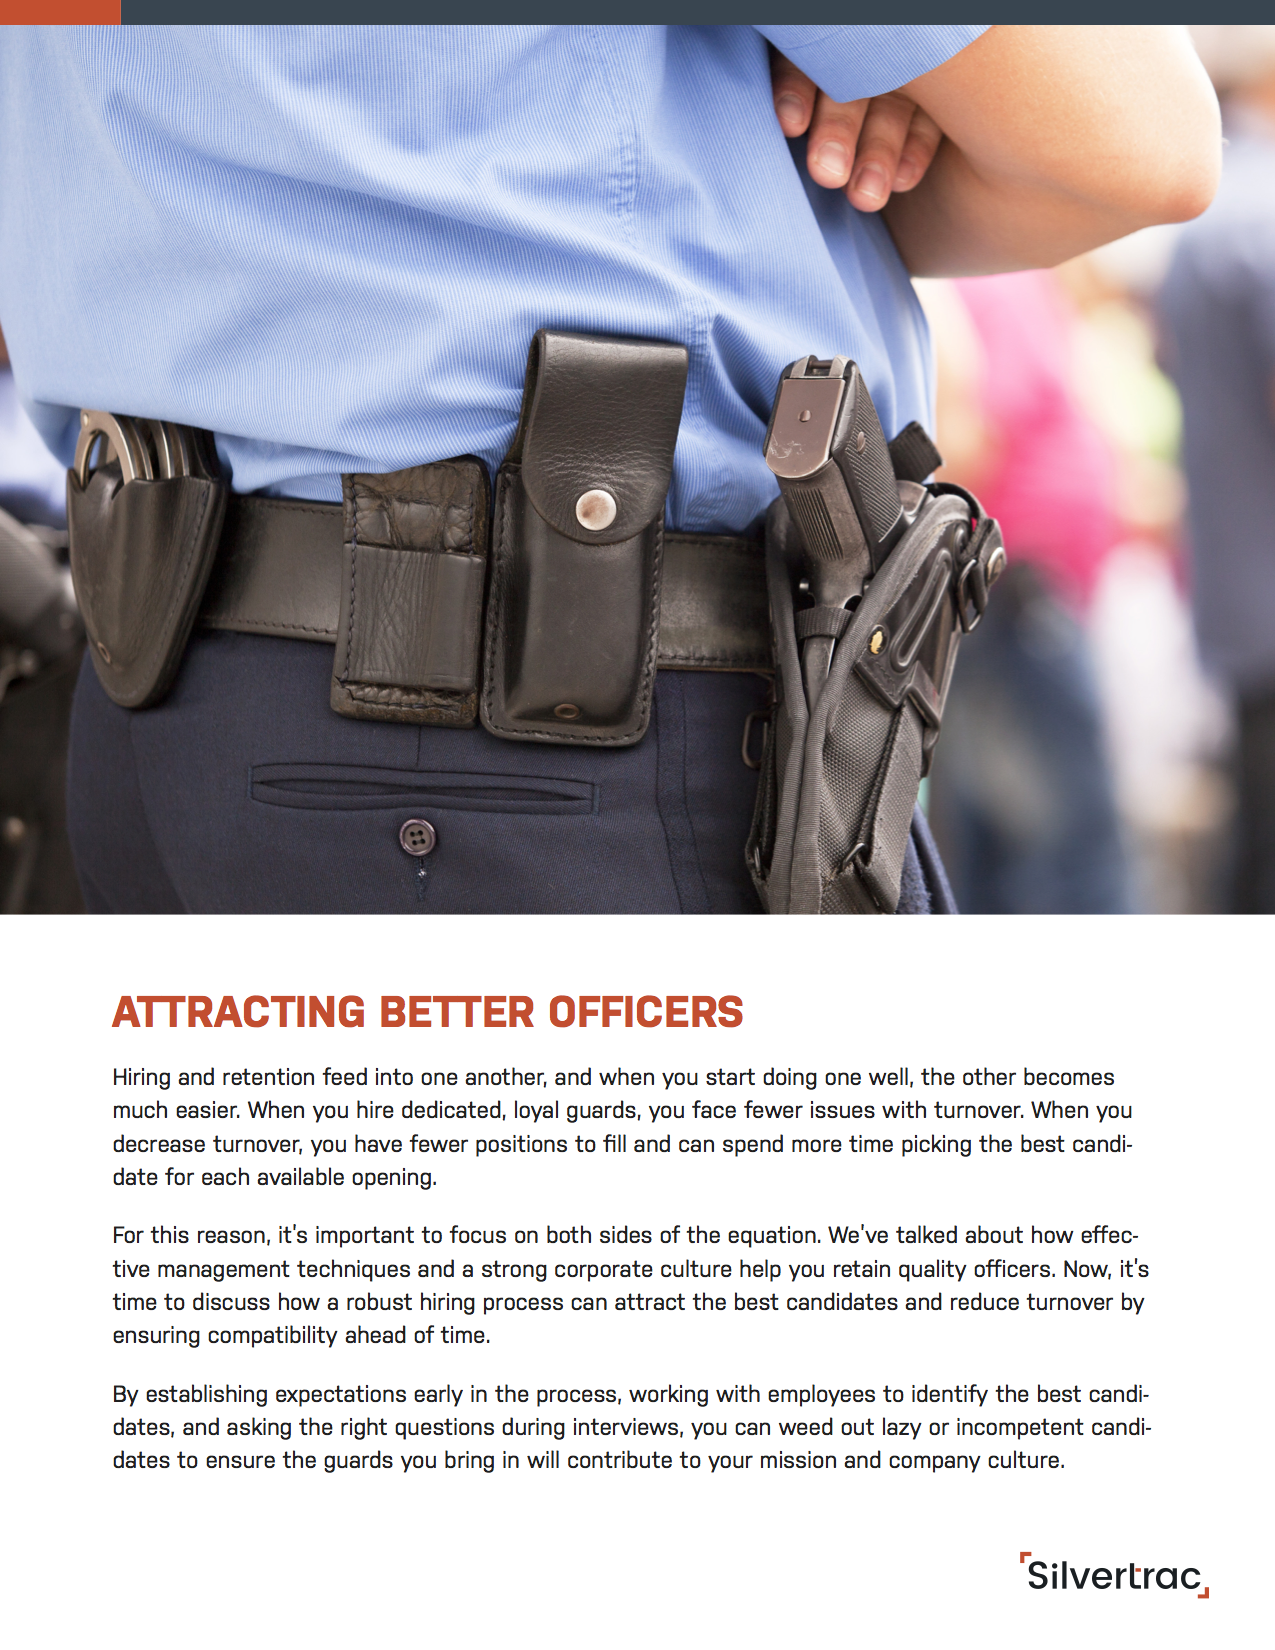 Why Do Good Security Officers Quit? A Silvertrac Guide Page 1